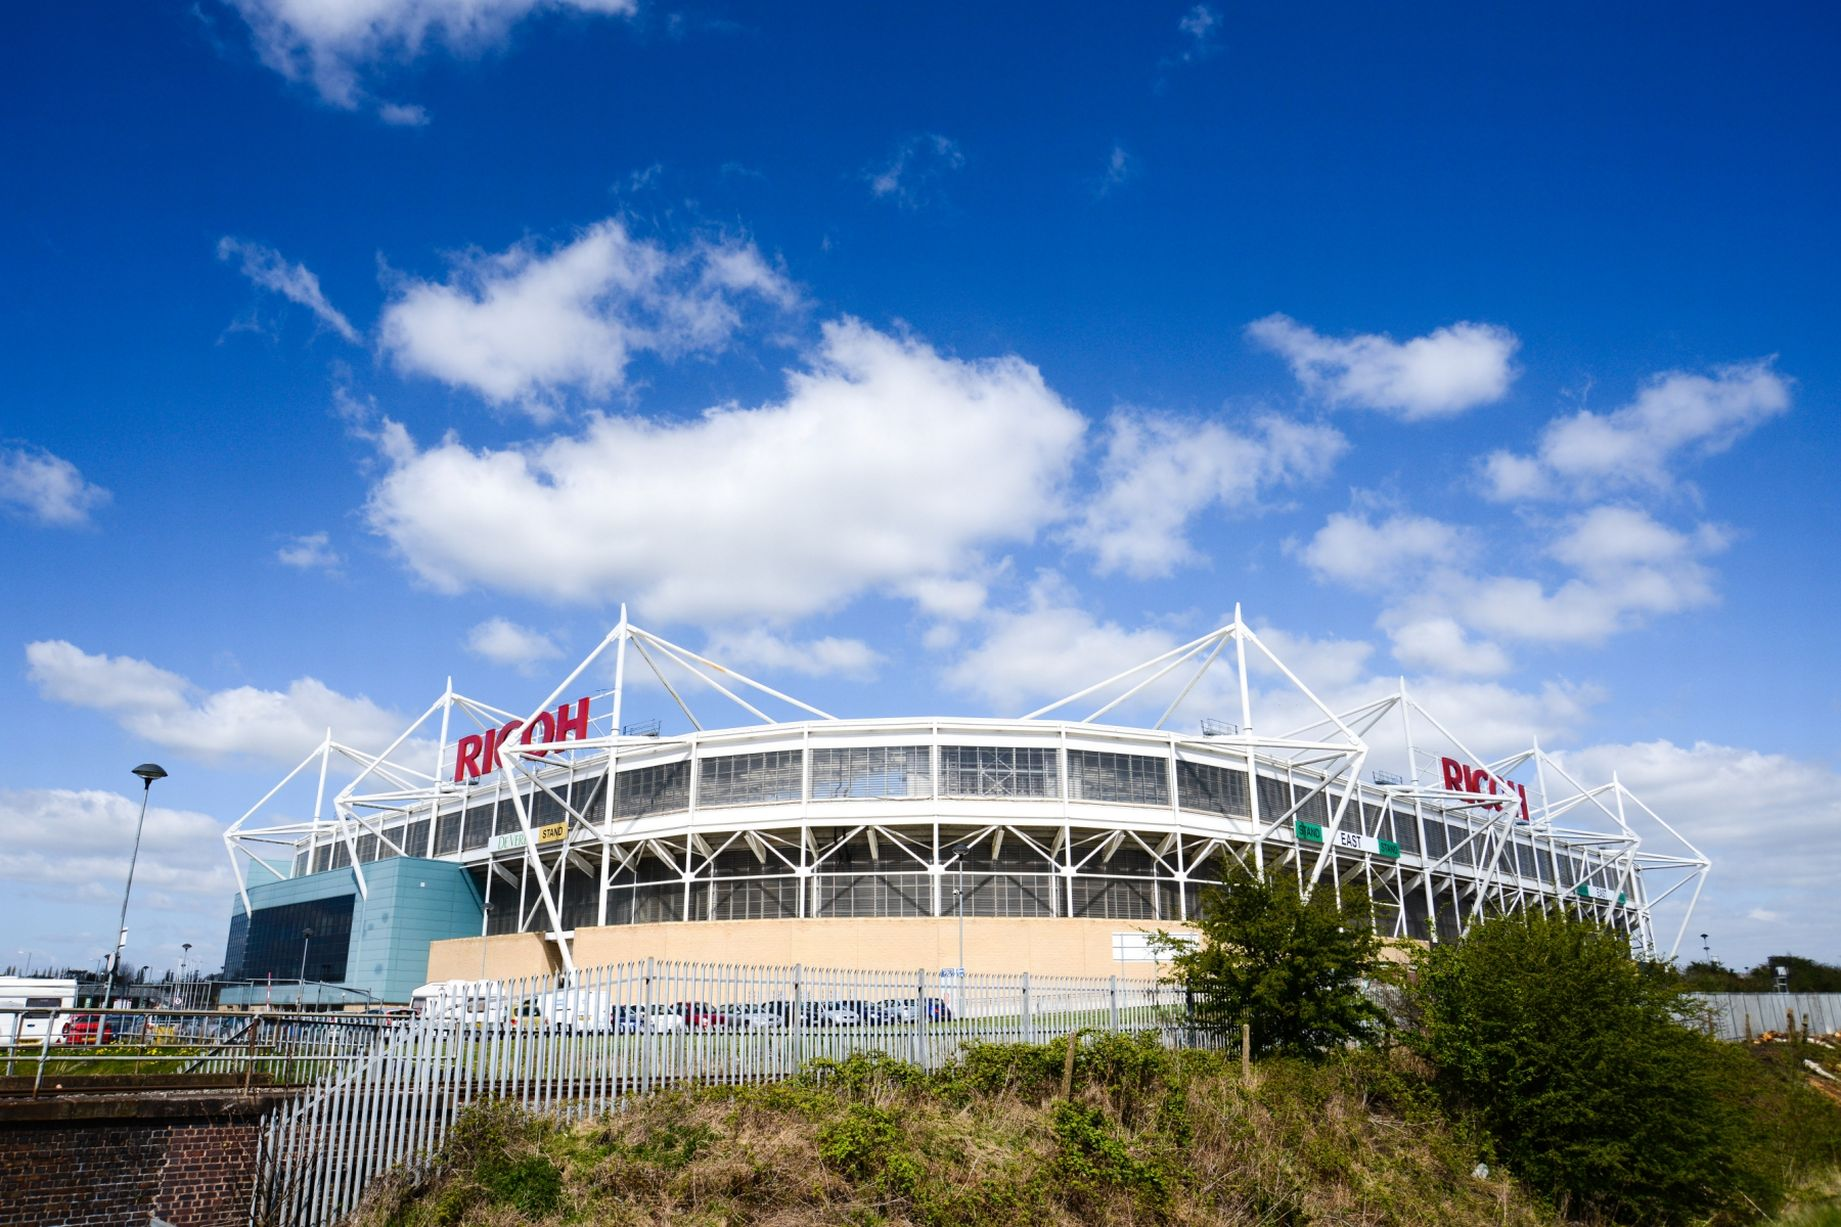 The Ricoh Arena, Coventry